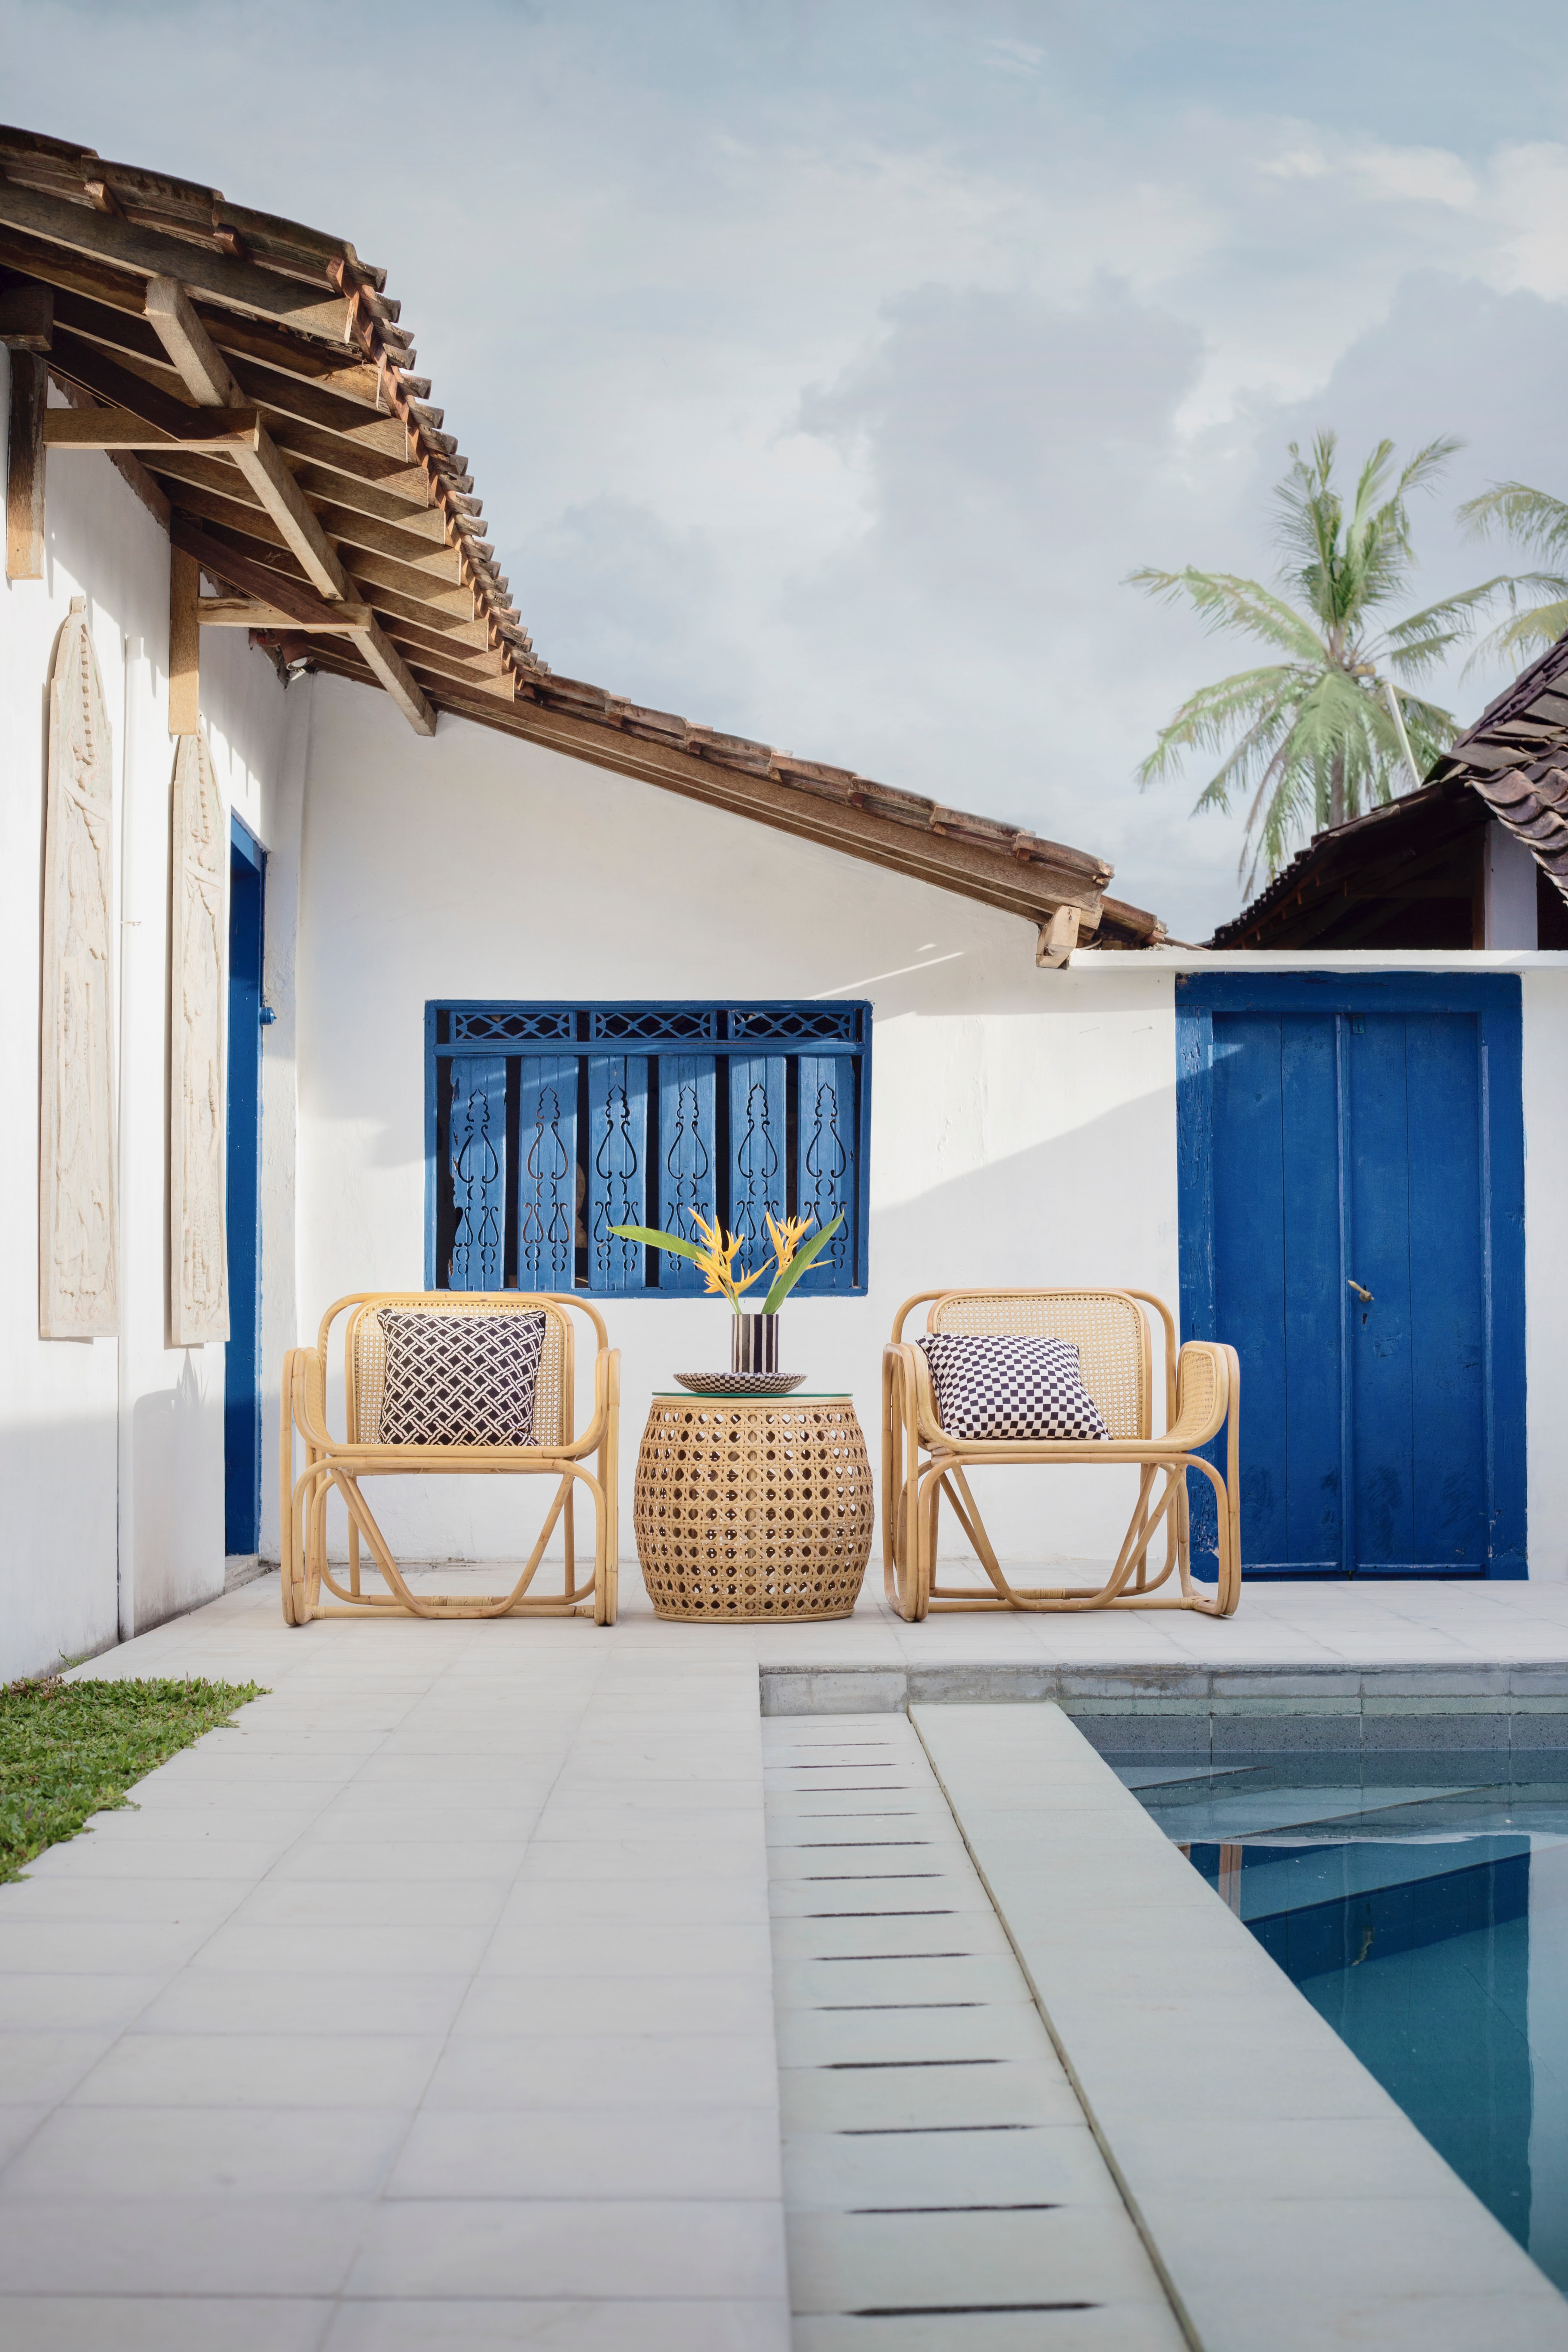 wicker table and chairs near swimming pool